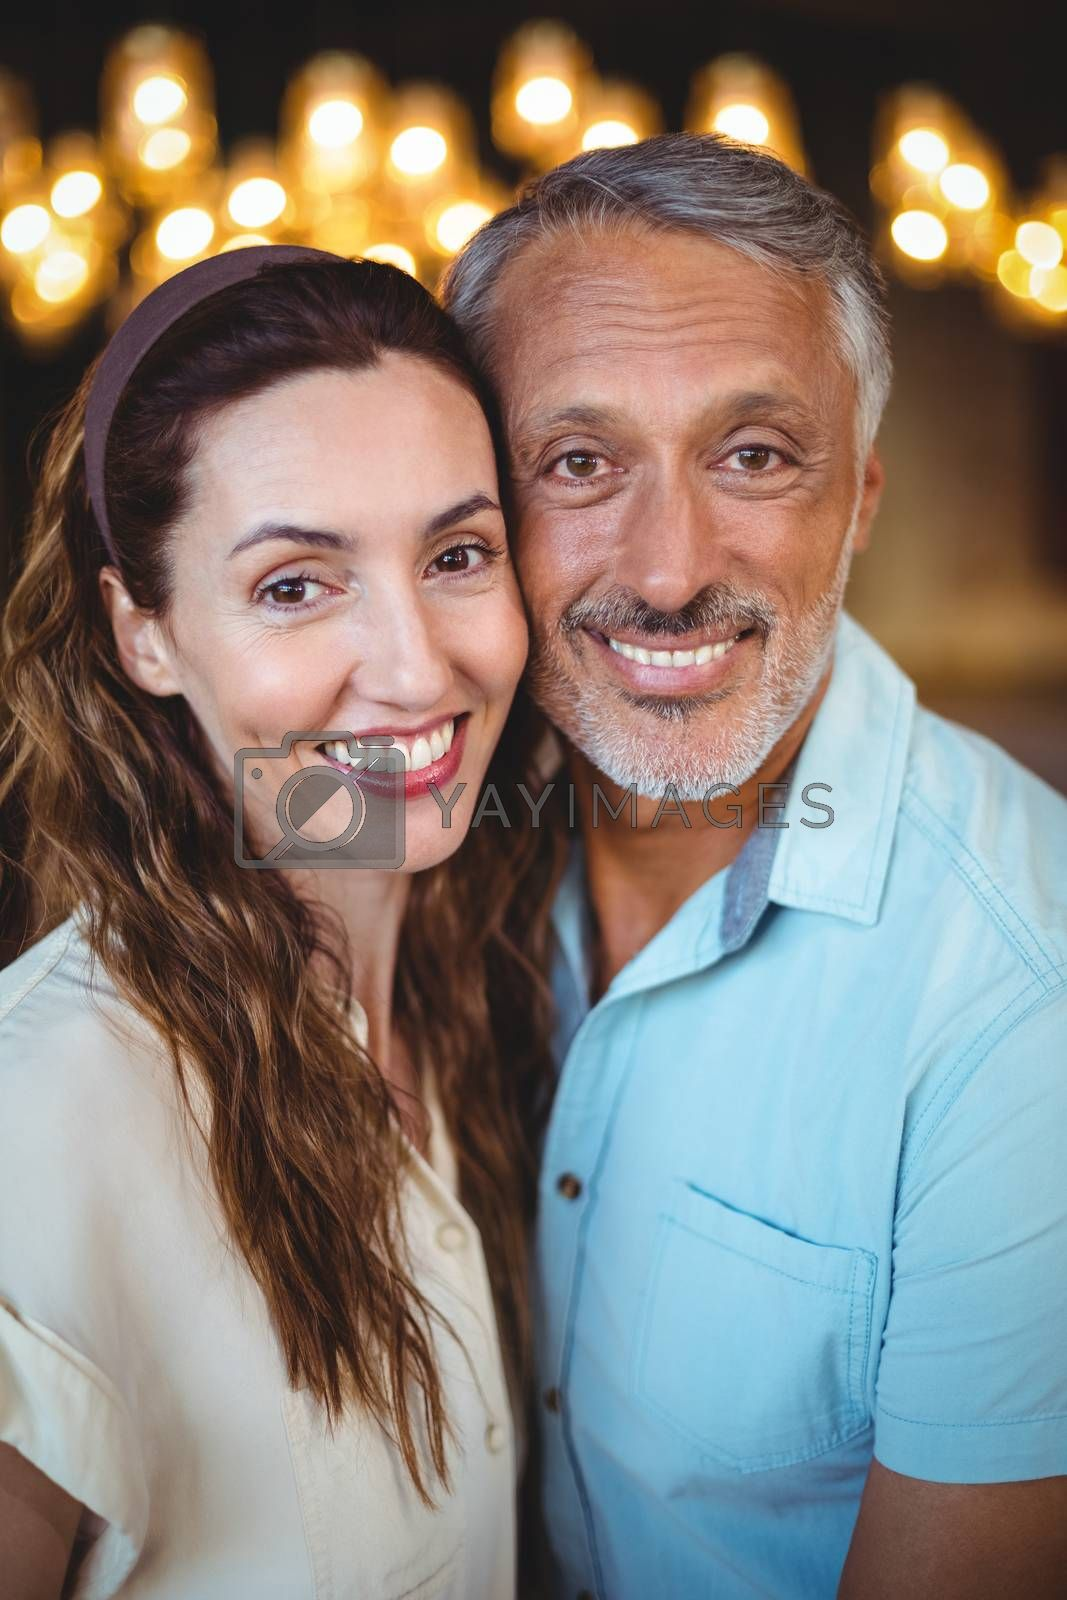 Royalty free image of Portrait of happy couple smiling at camera by Wavebreakmedia